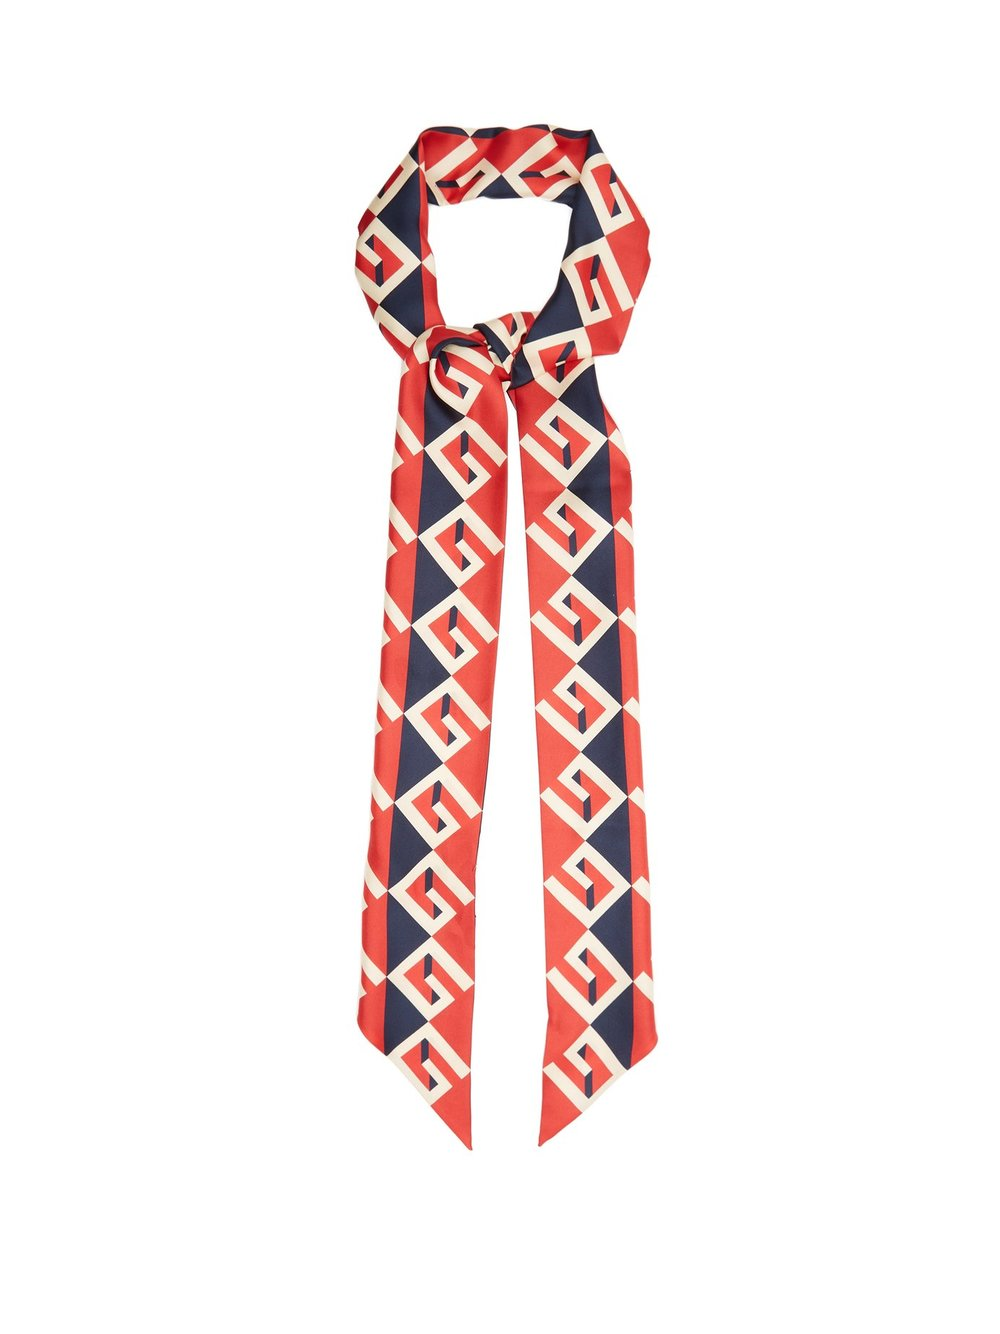 Silk scarf, £225 by Gucci at Matches